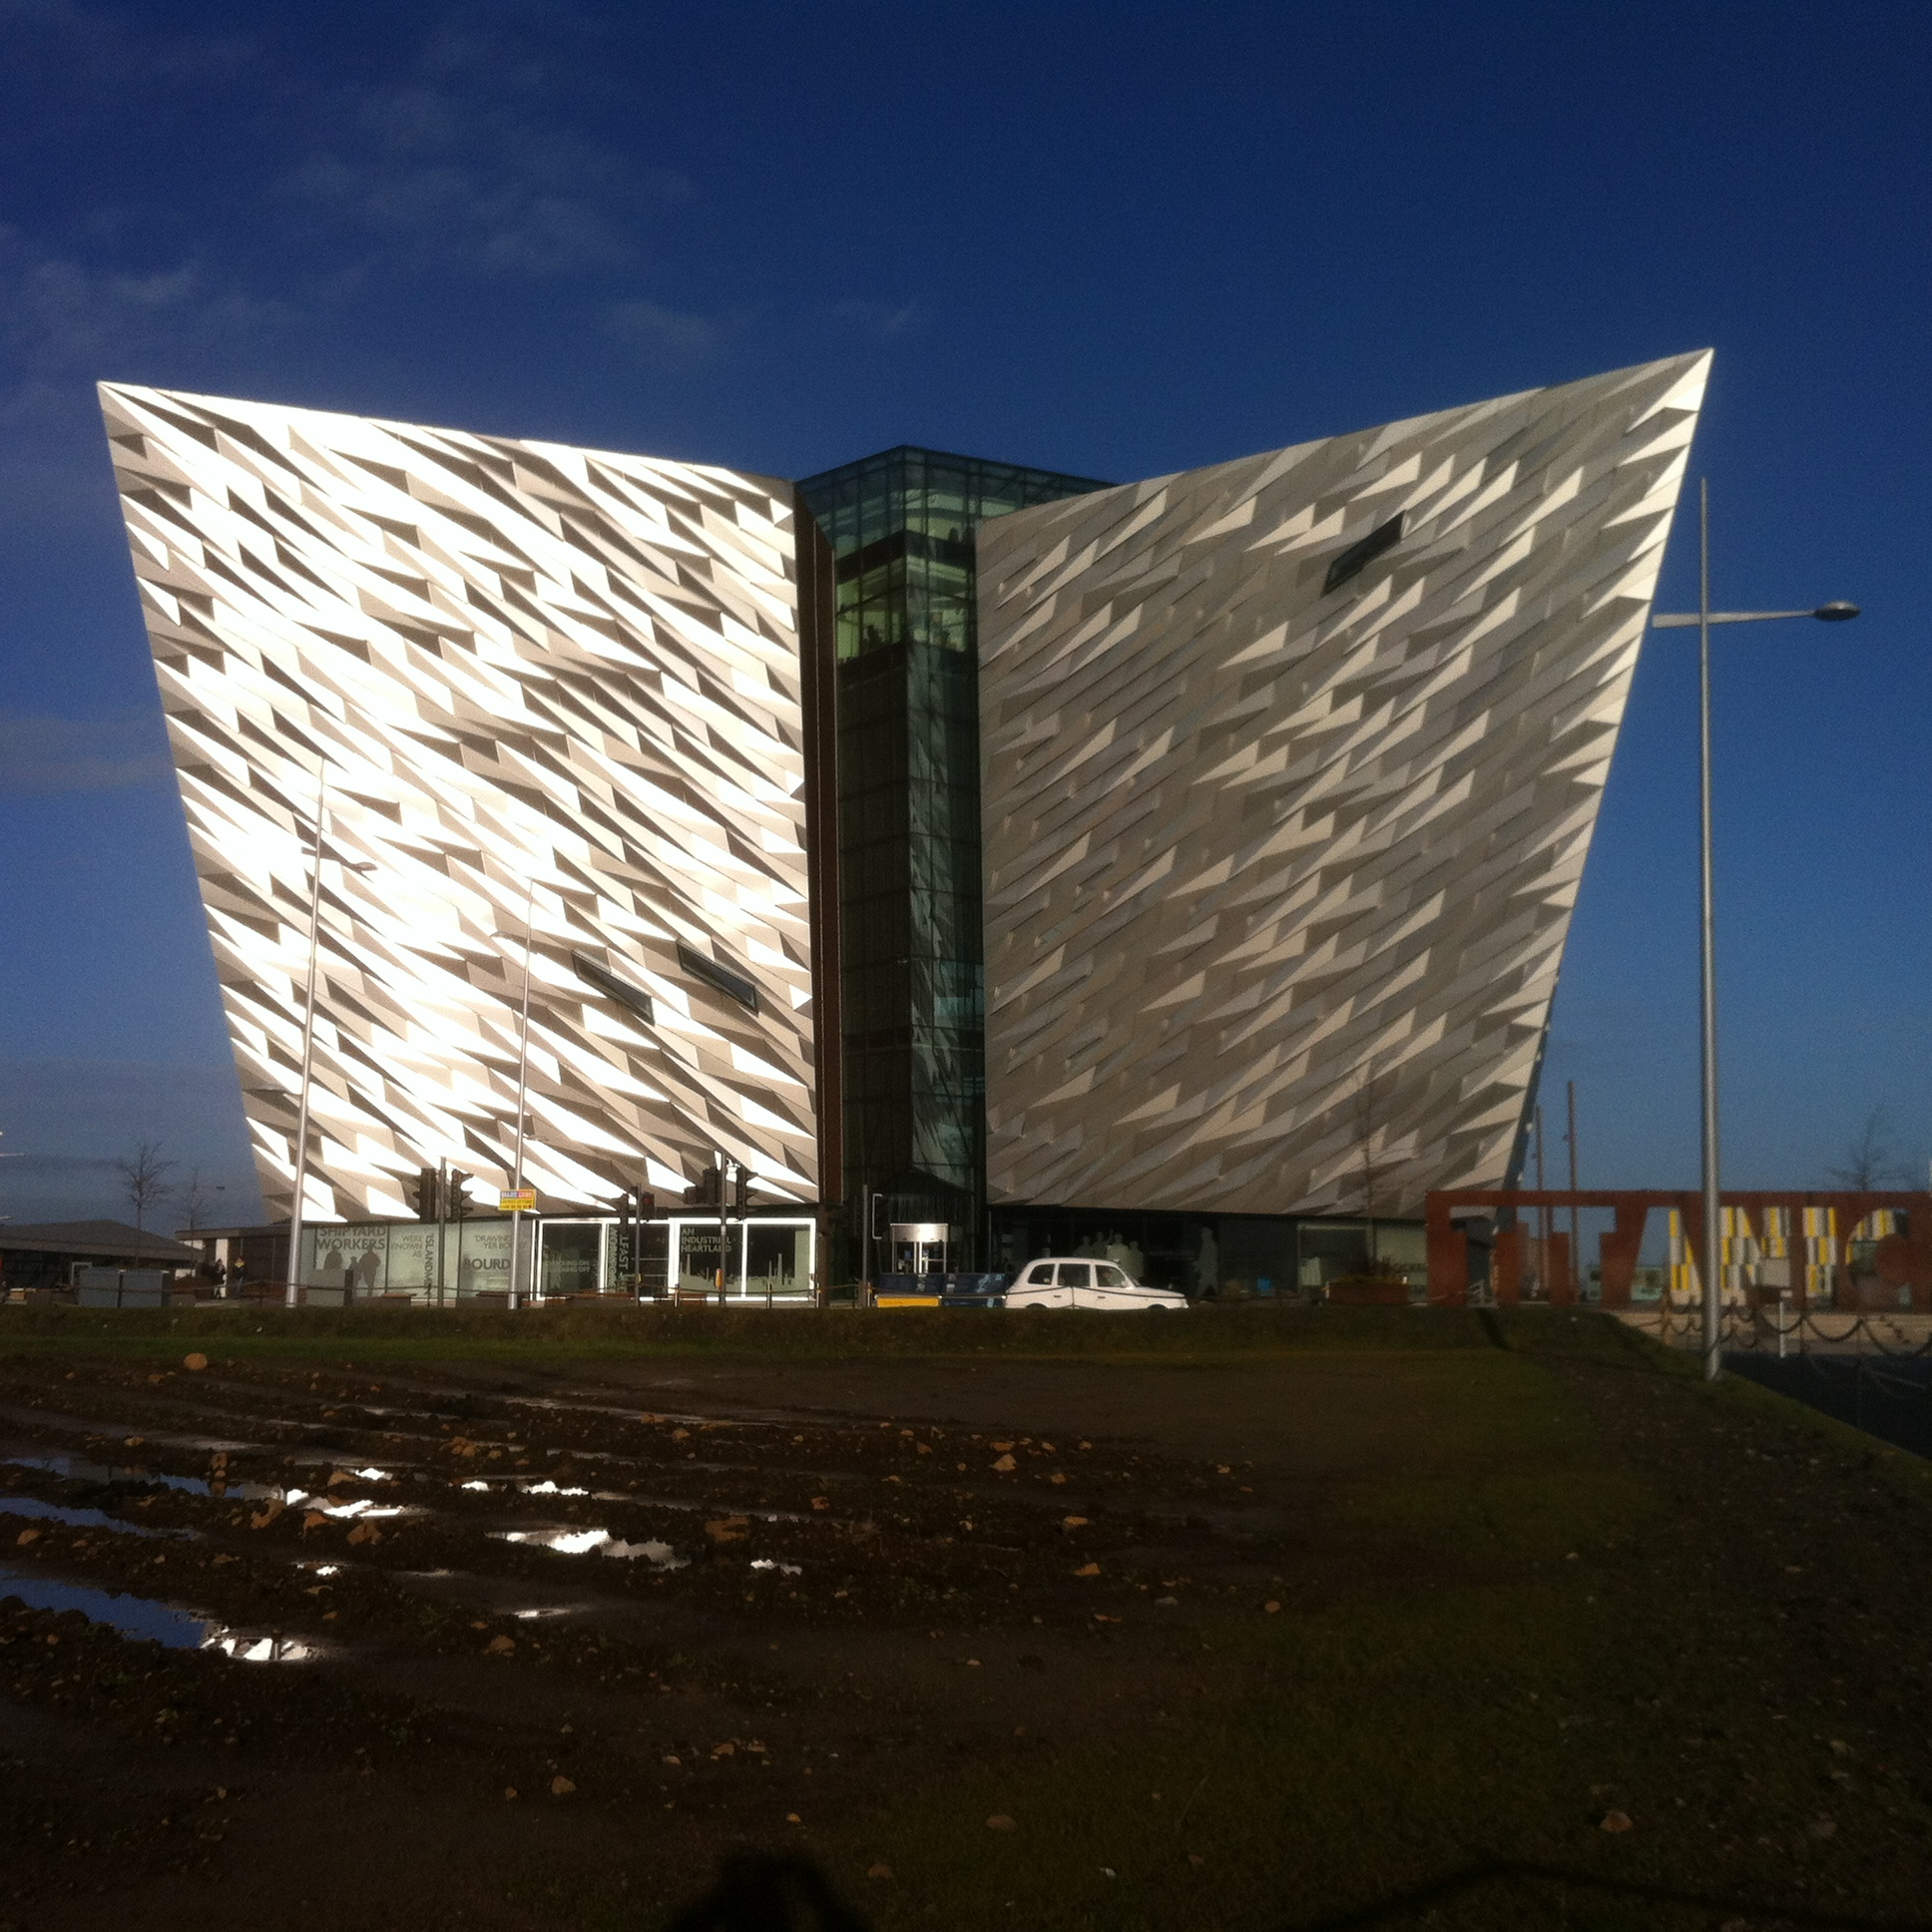 The Titanic Museum in Belfast is cursed